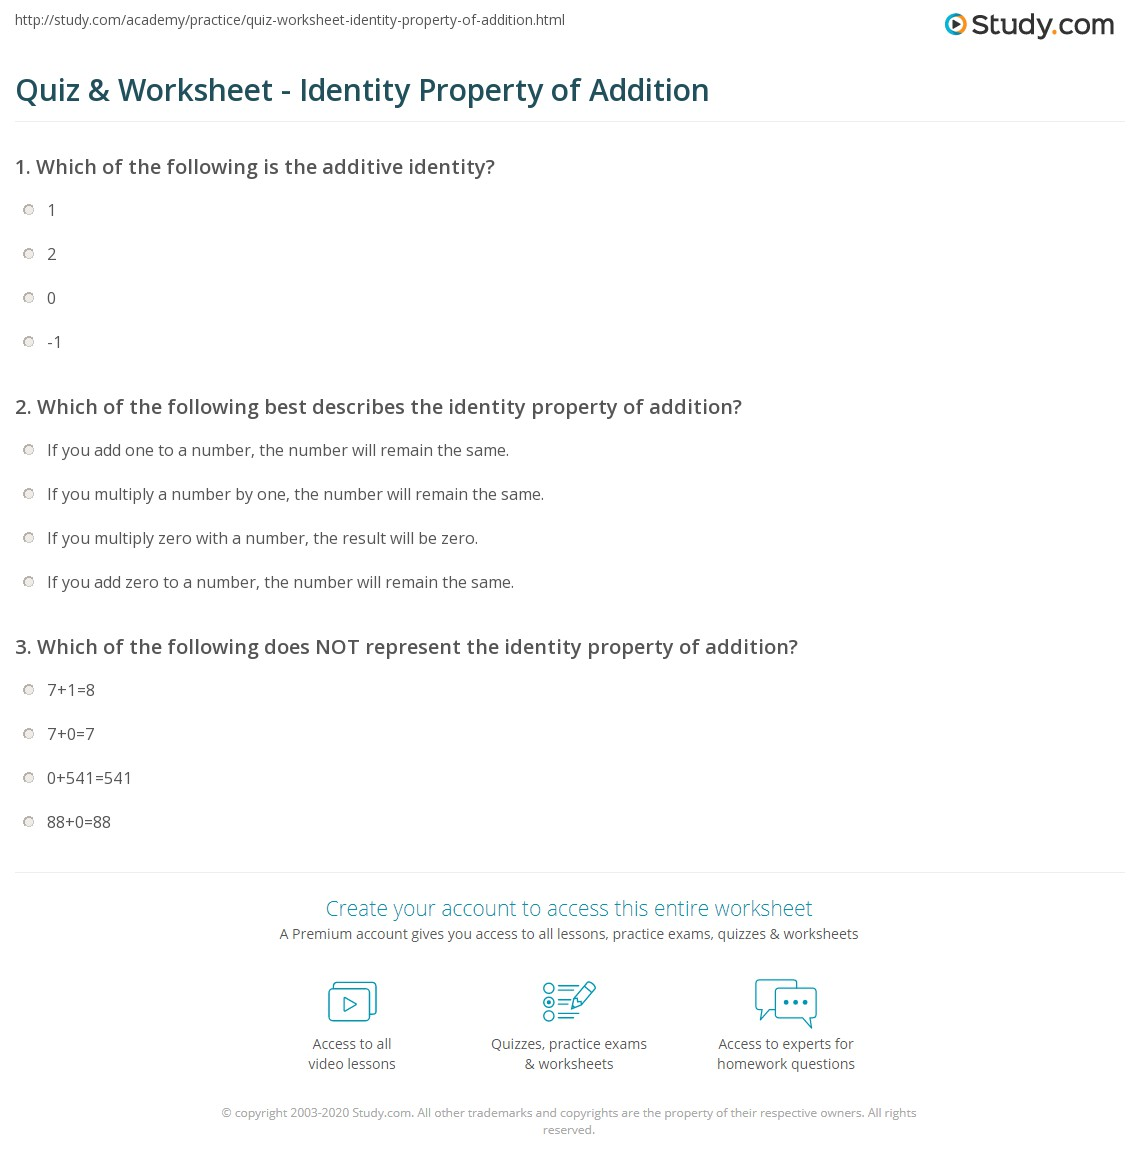 worksheet Properties Of Addition Worksheets quiz worksheet identity property of addition study com print definition example worksheet